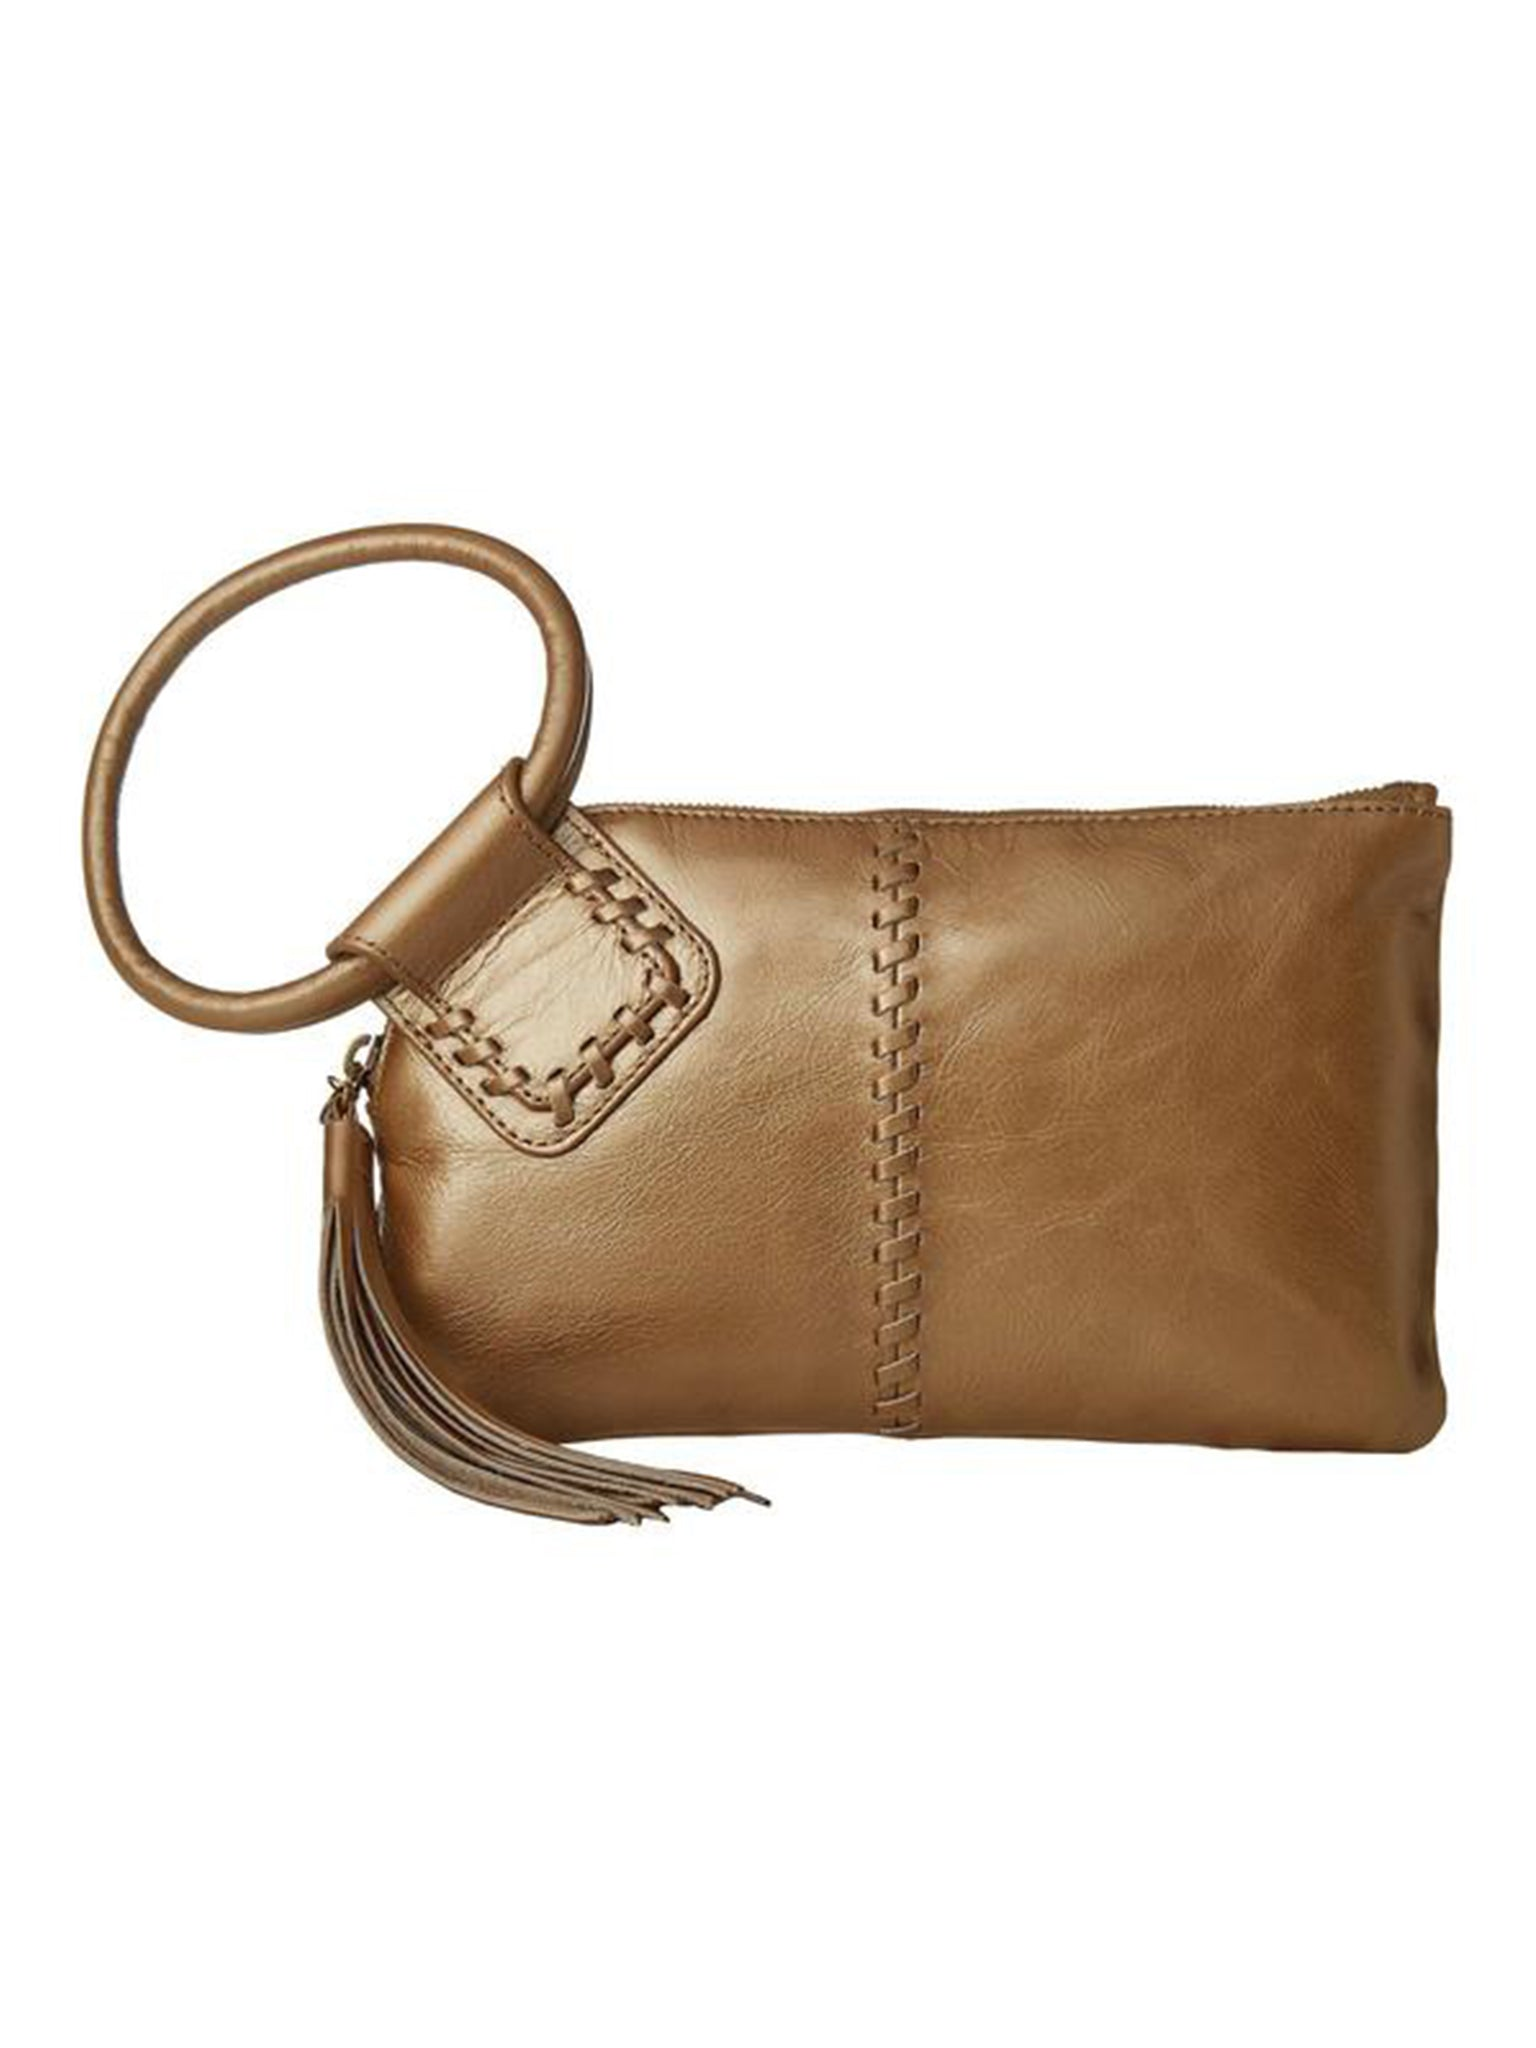 HOBO the Original Sable Whip Stitch Wristlet